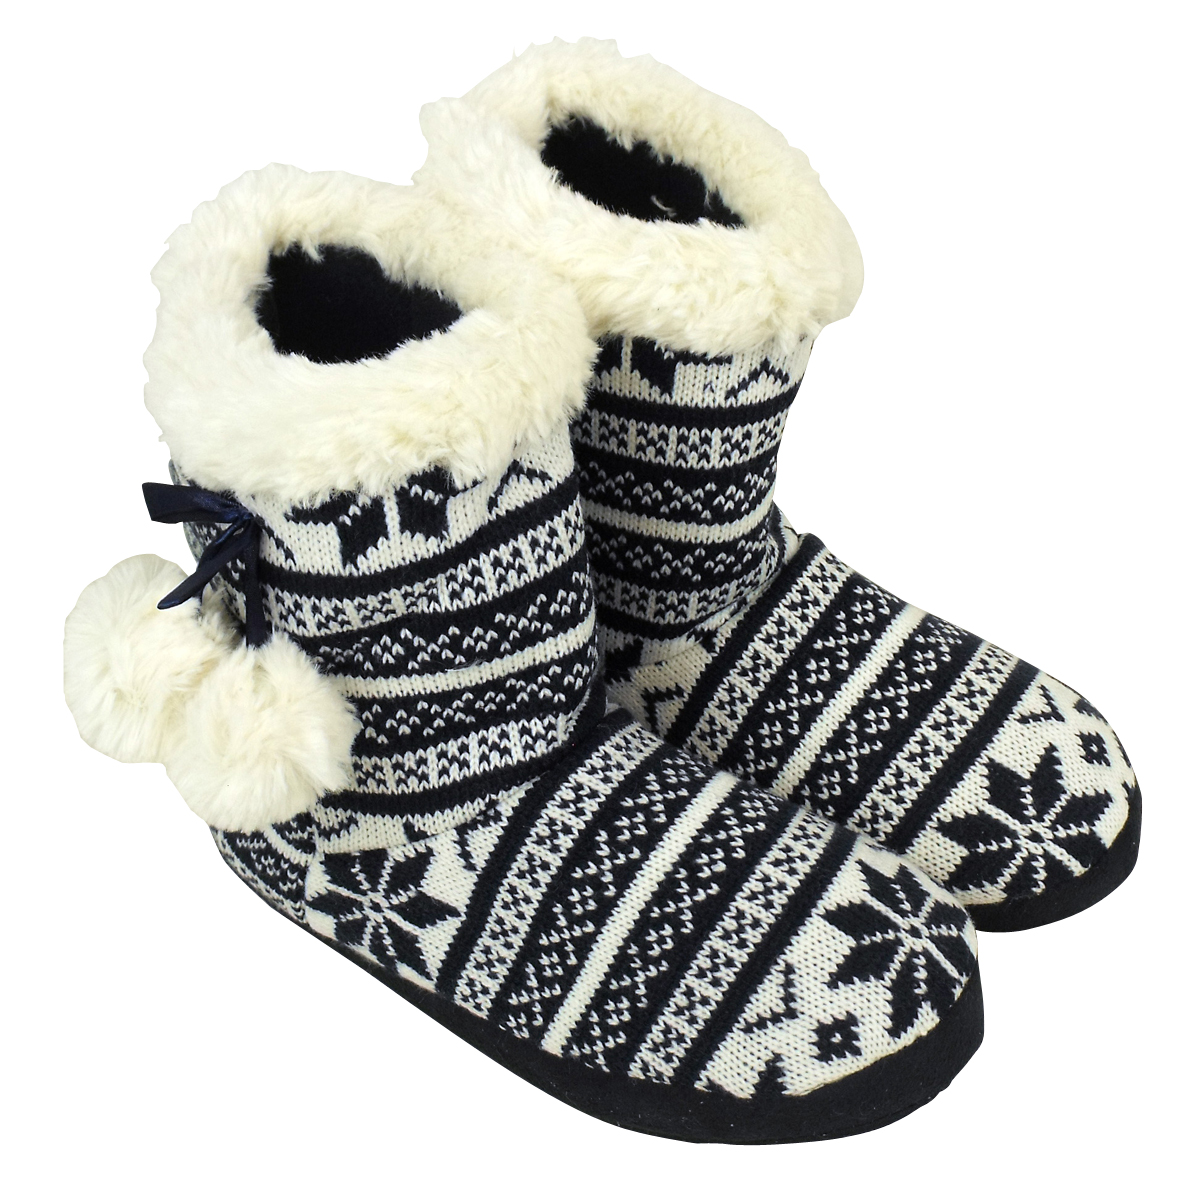 Bootee Slipper Womens Quality Furry Ankle Boot Eskimo Slippers ...